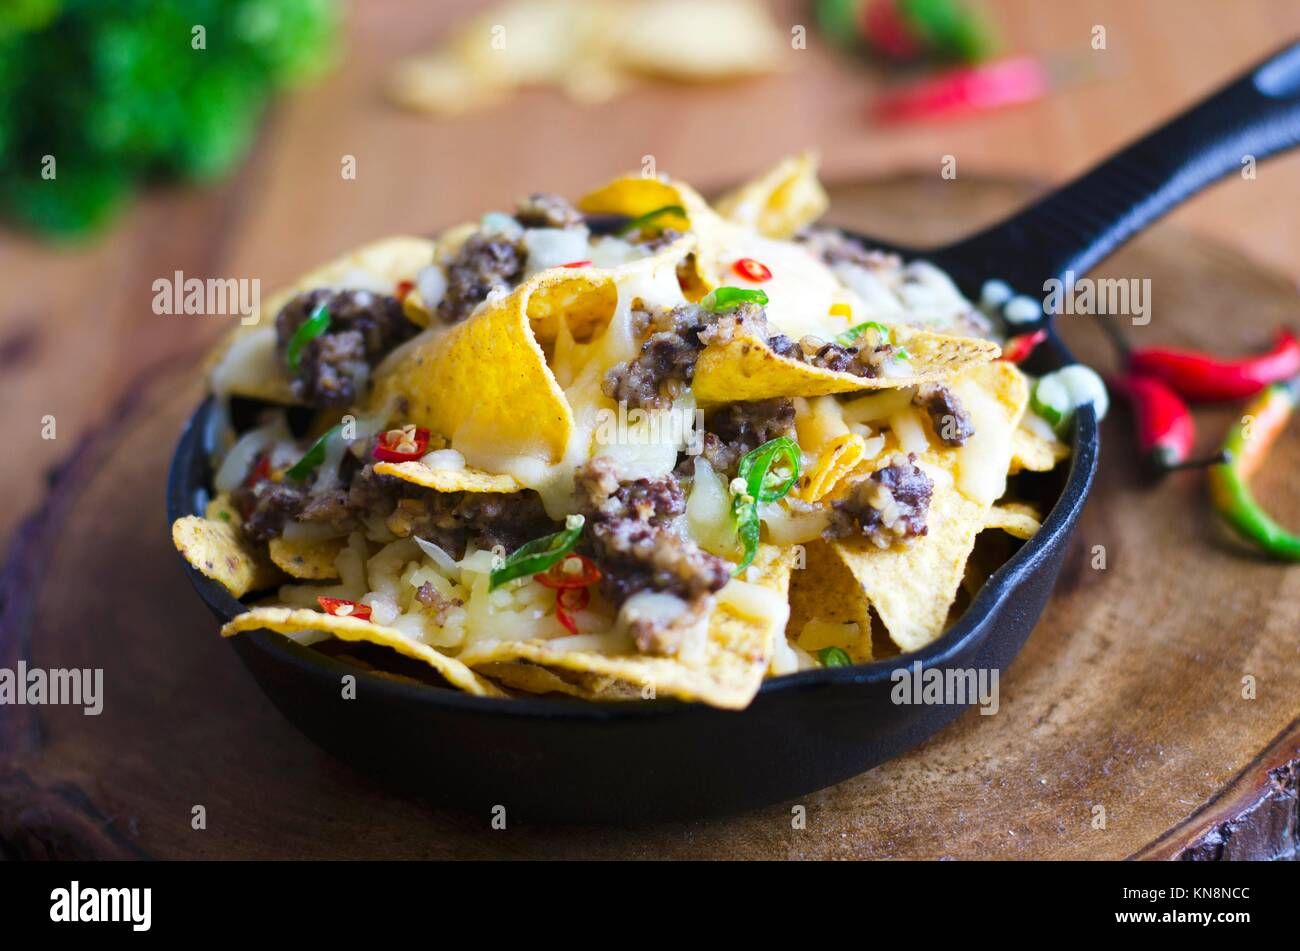 Nachos with haggis, melted cheese and chilli peppers. Stock Photo